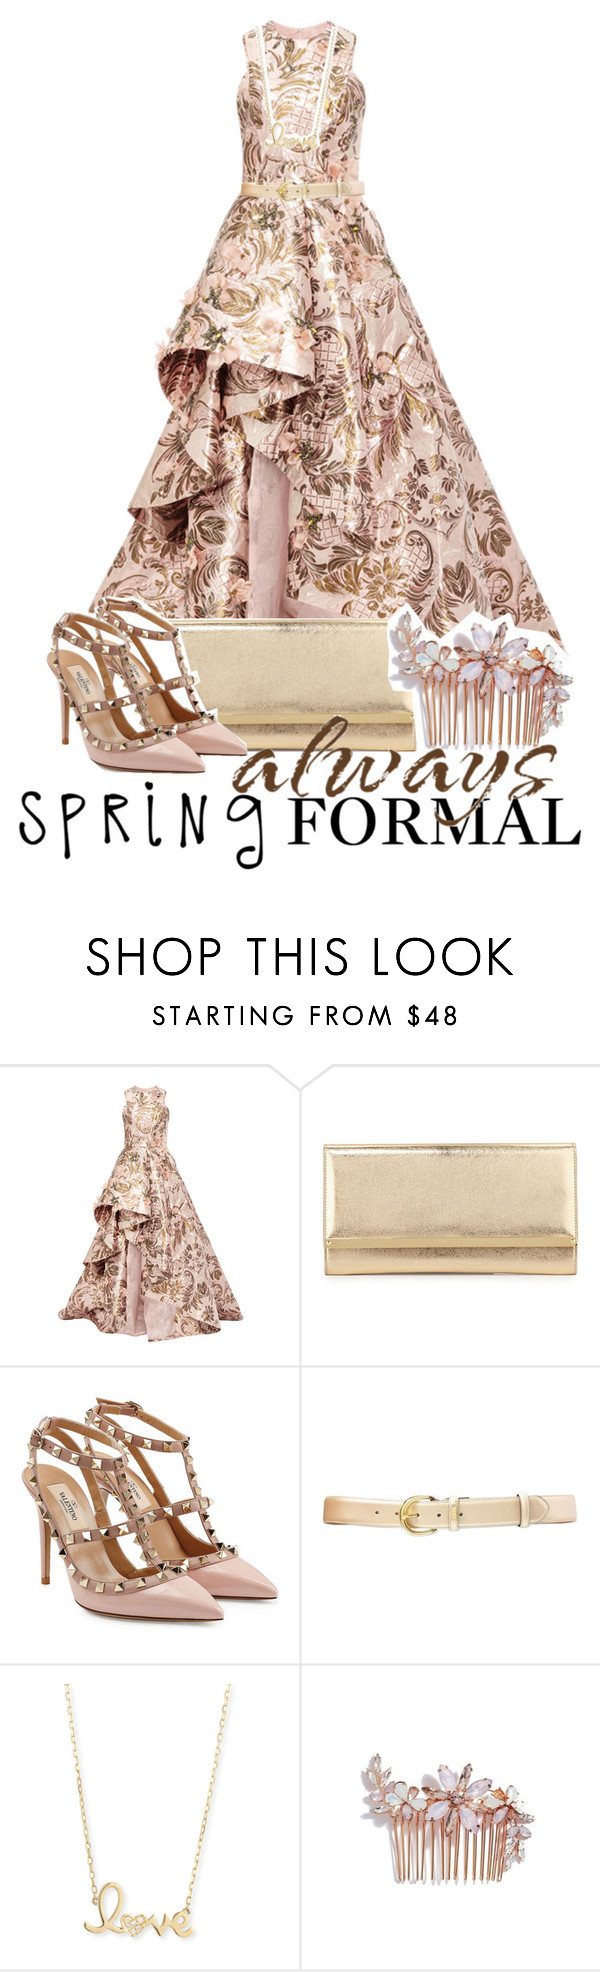 """Always, Spring Formal"" by drinkdionysus ❤ liked on Polyvore featuring Monique Lhuillier, Jimmy Choo, Valentino, Lauren Ralph Lauren, Sydney Evan, Camilla Christine and springformal"